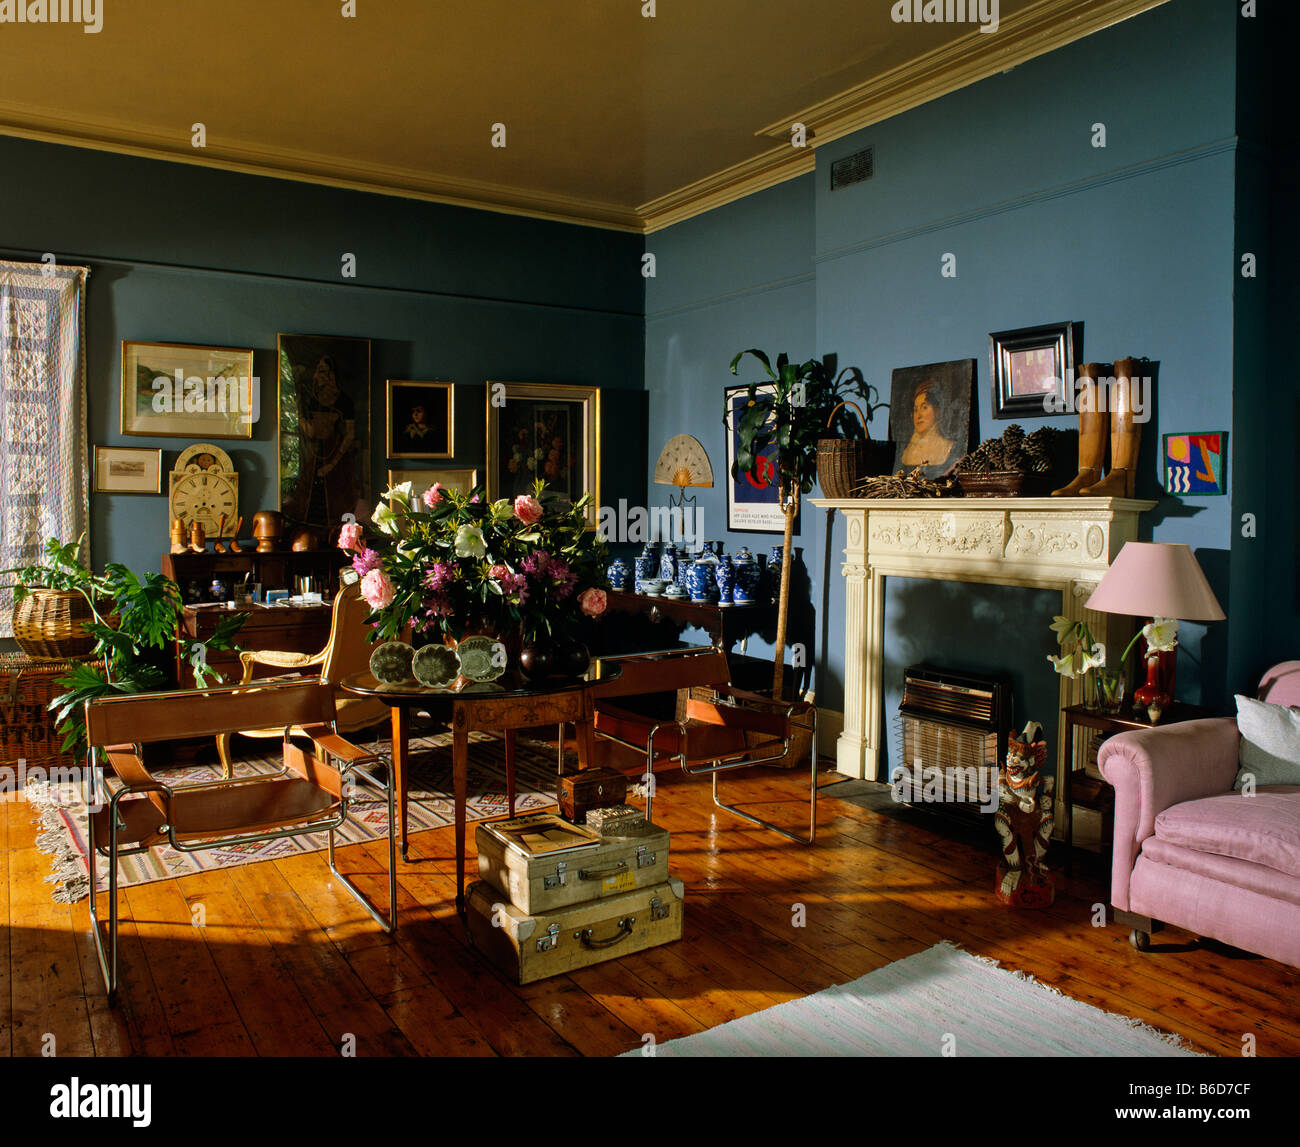 living room decor 80s stockfotos living room decor 80s bilder alamy. Black Bedroom Furniture Sets. Home Design Ideas